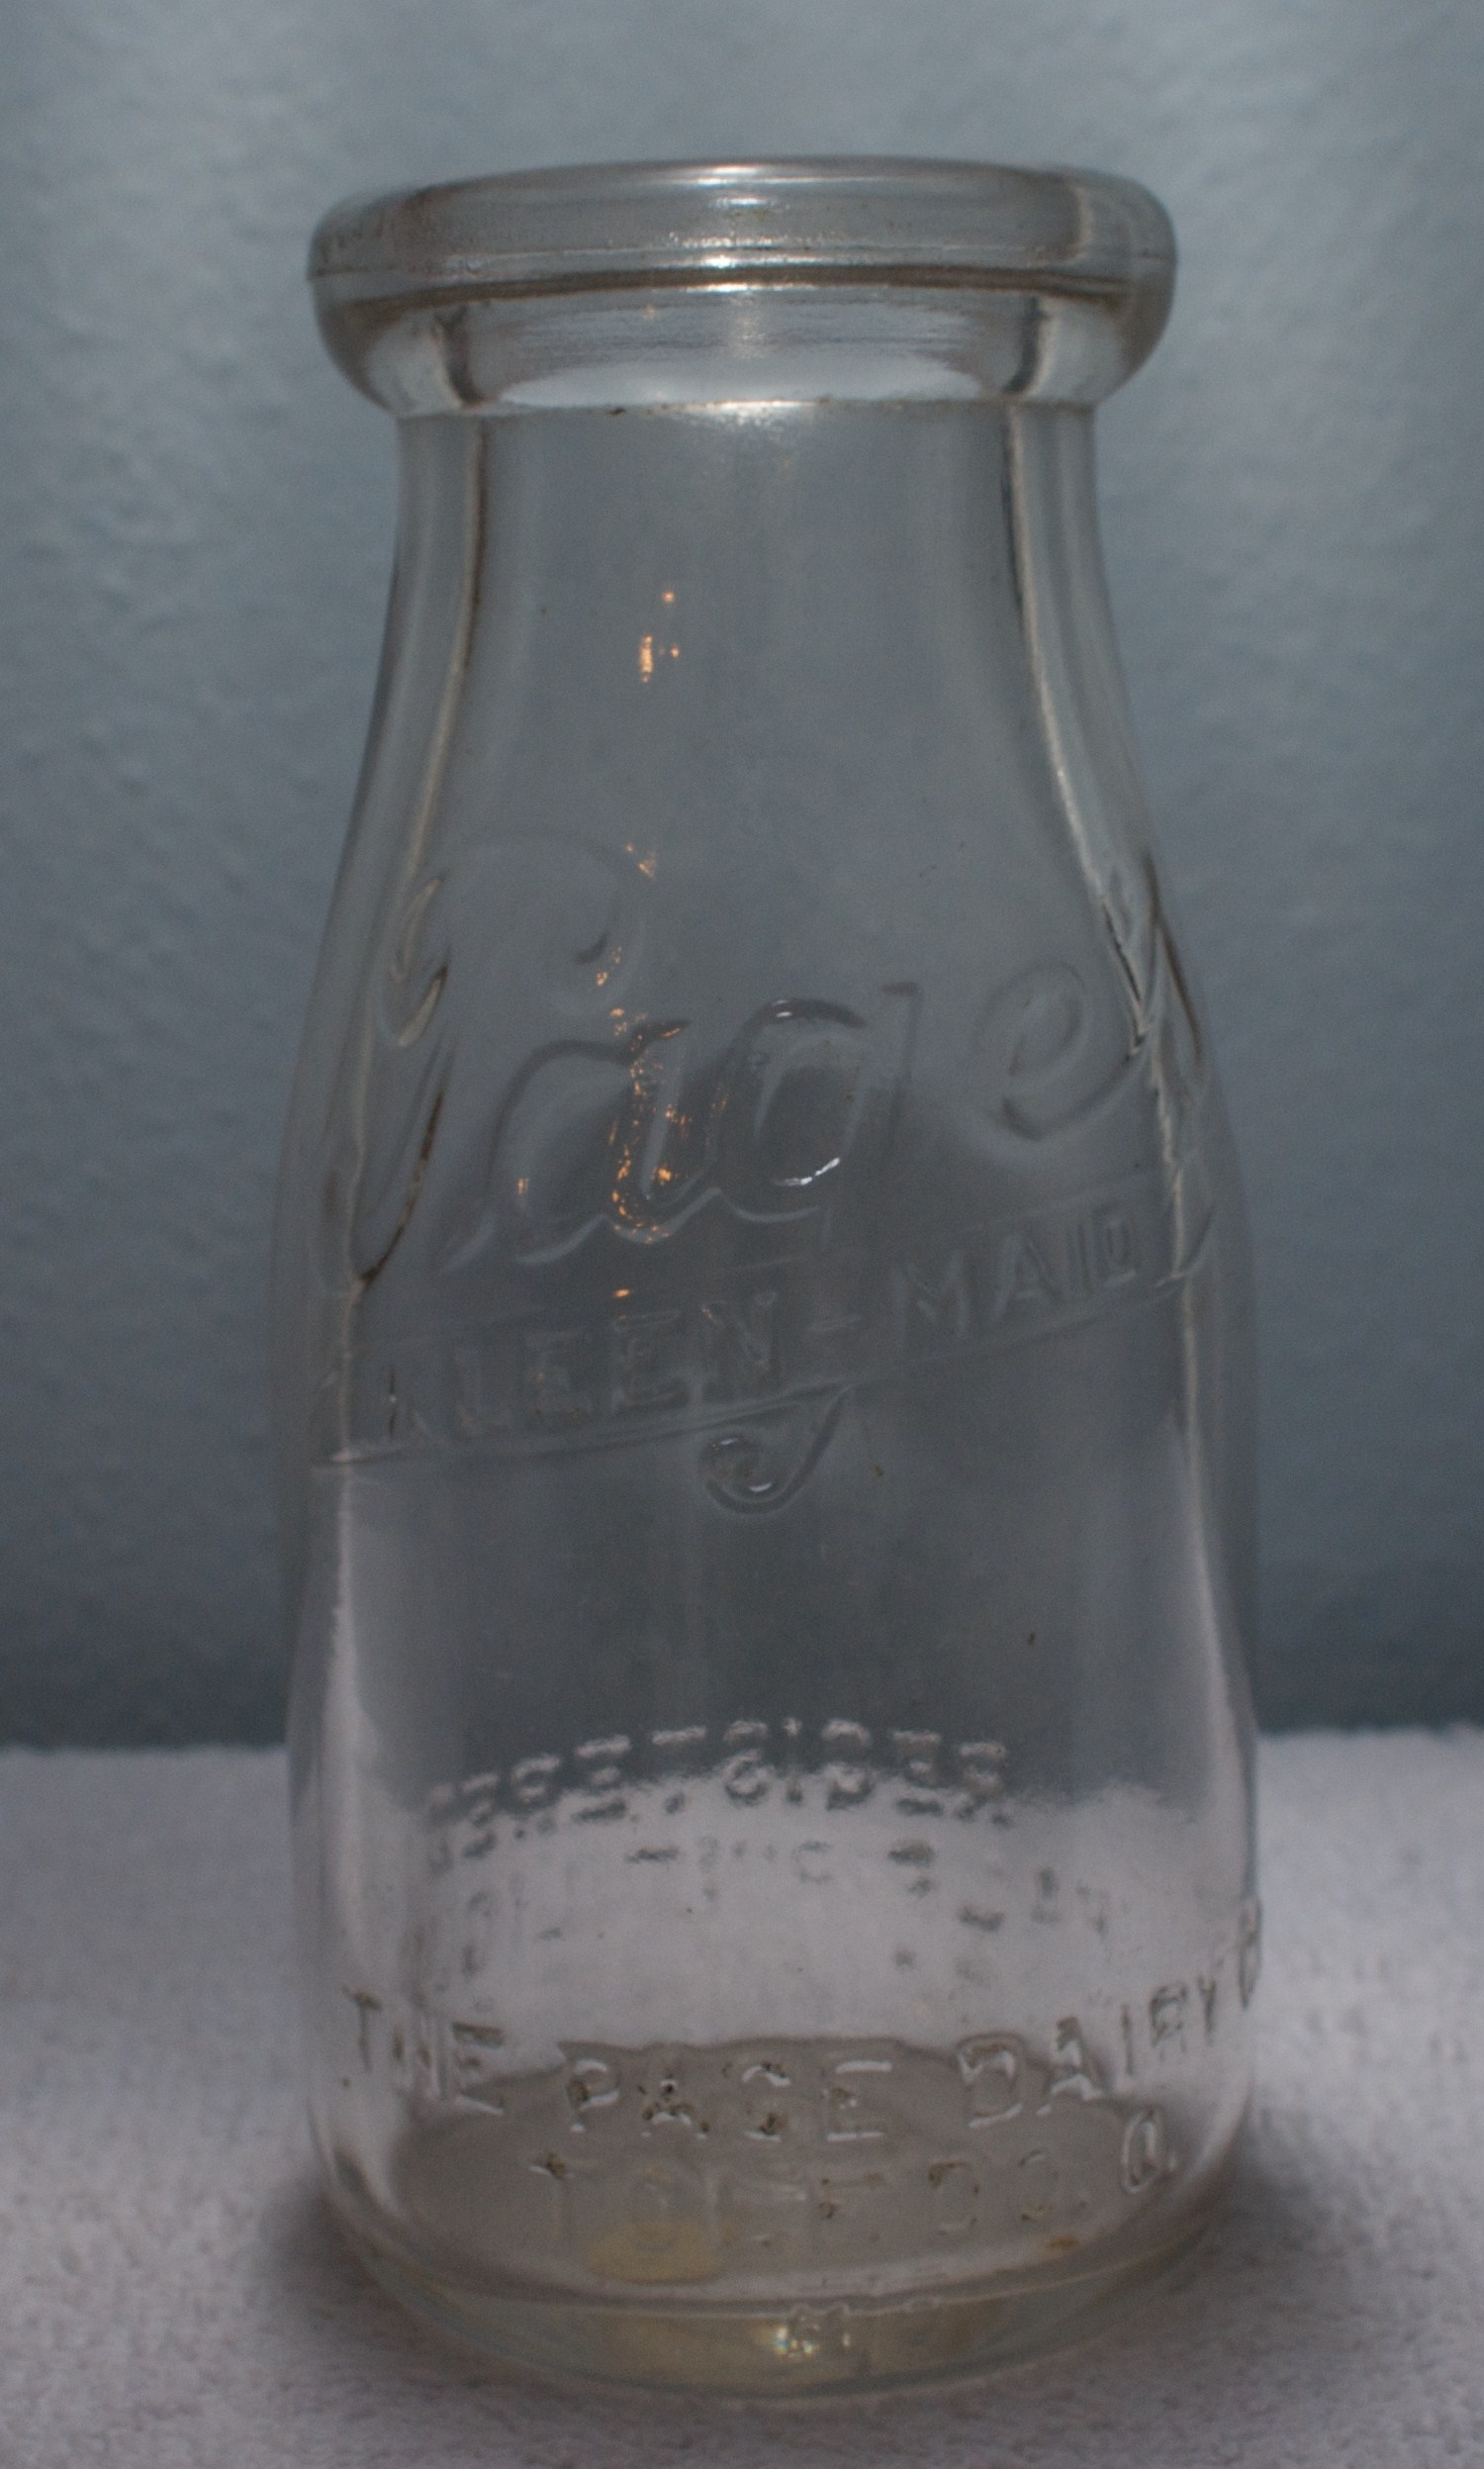 Pages Kleen-Maid Half-Pint Milk Bottle 1930s with Larger Page Name on Bottom